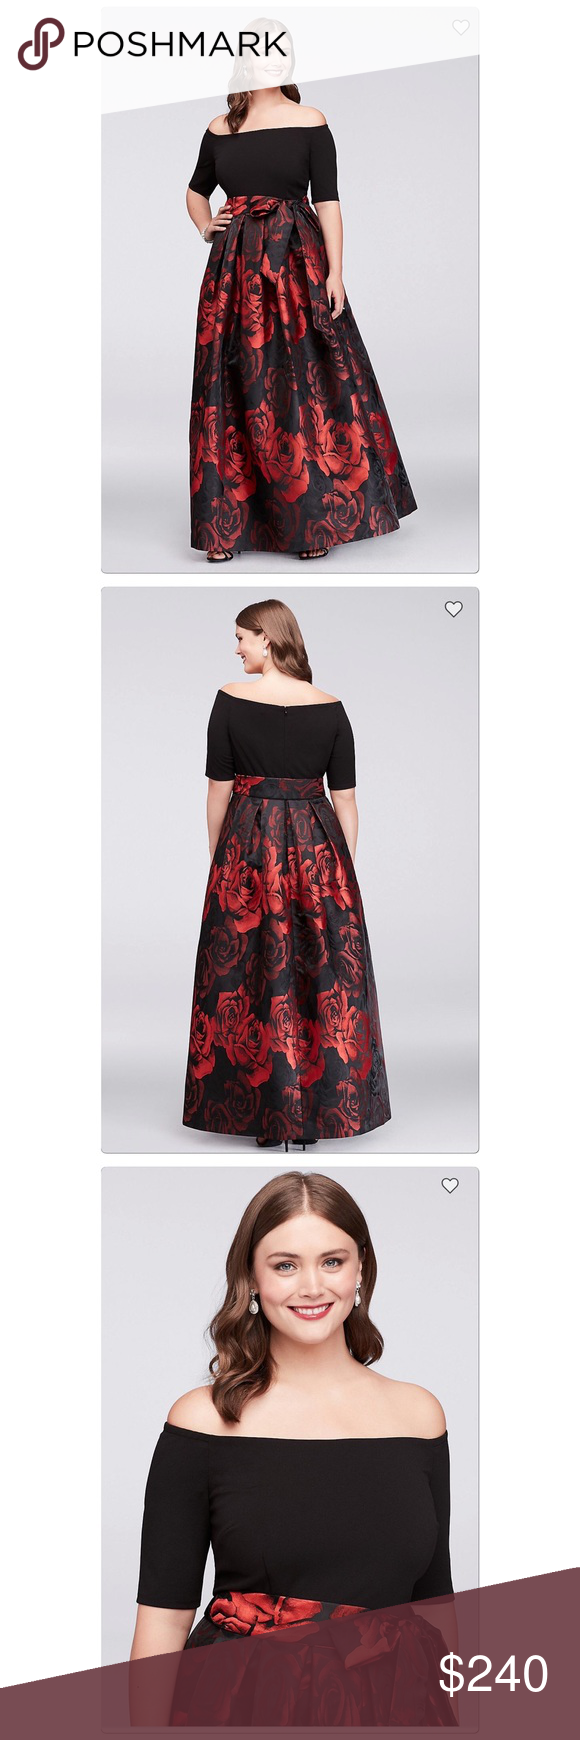 Plus size red roses gown 🌹 This plus-size ball gown is in bloom  the rose  jacquard skirt makes a bold floral statement a800b2402